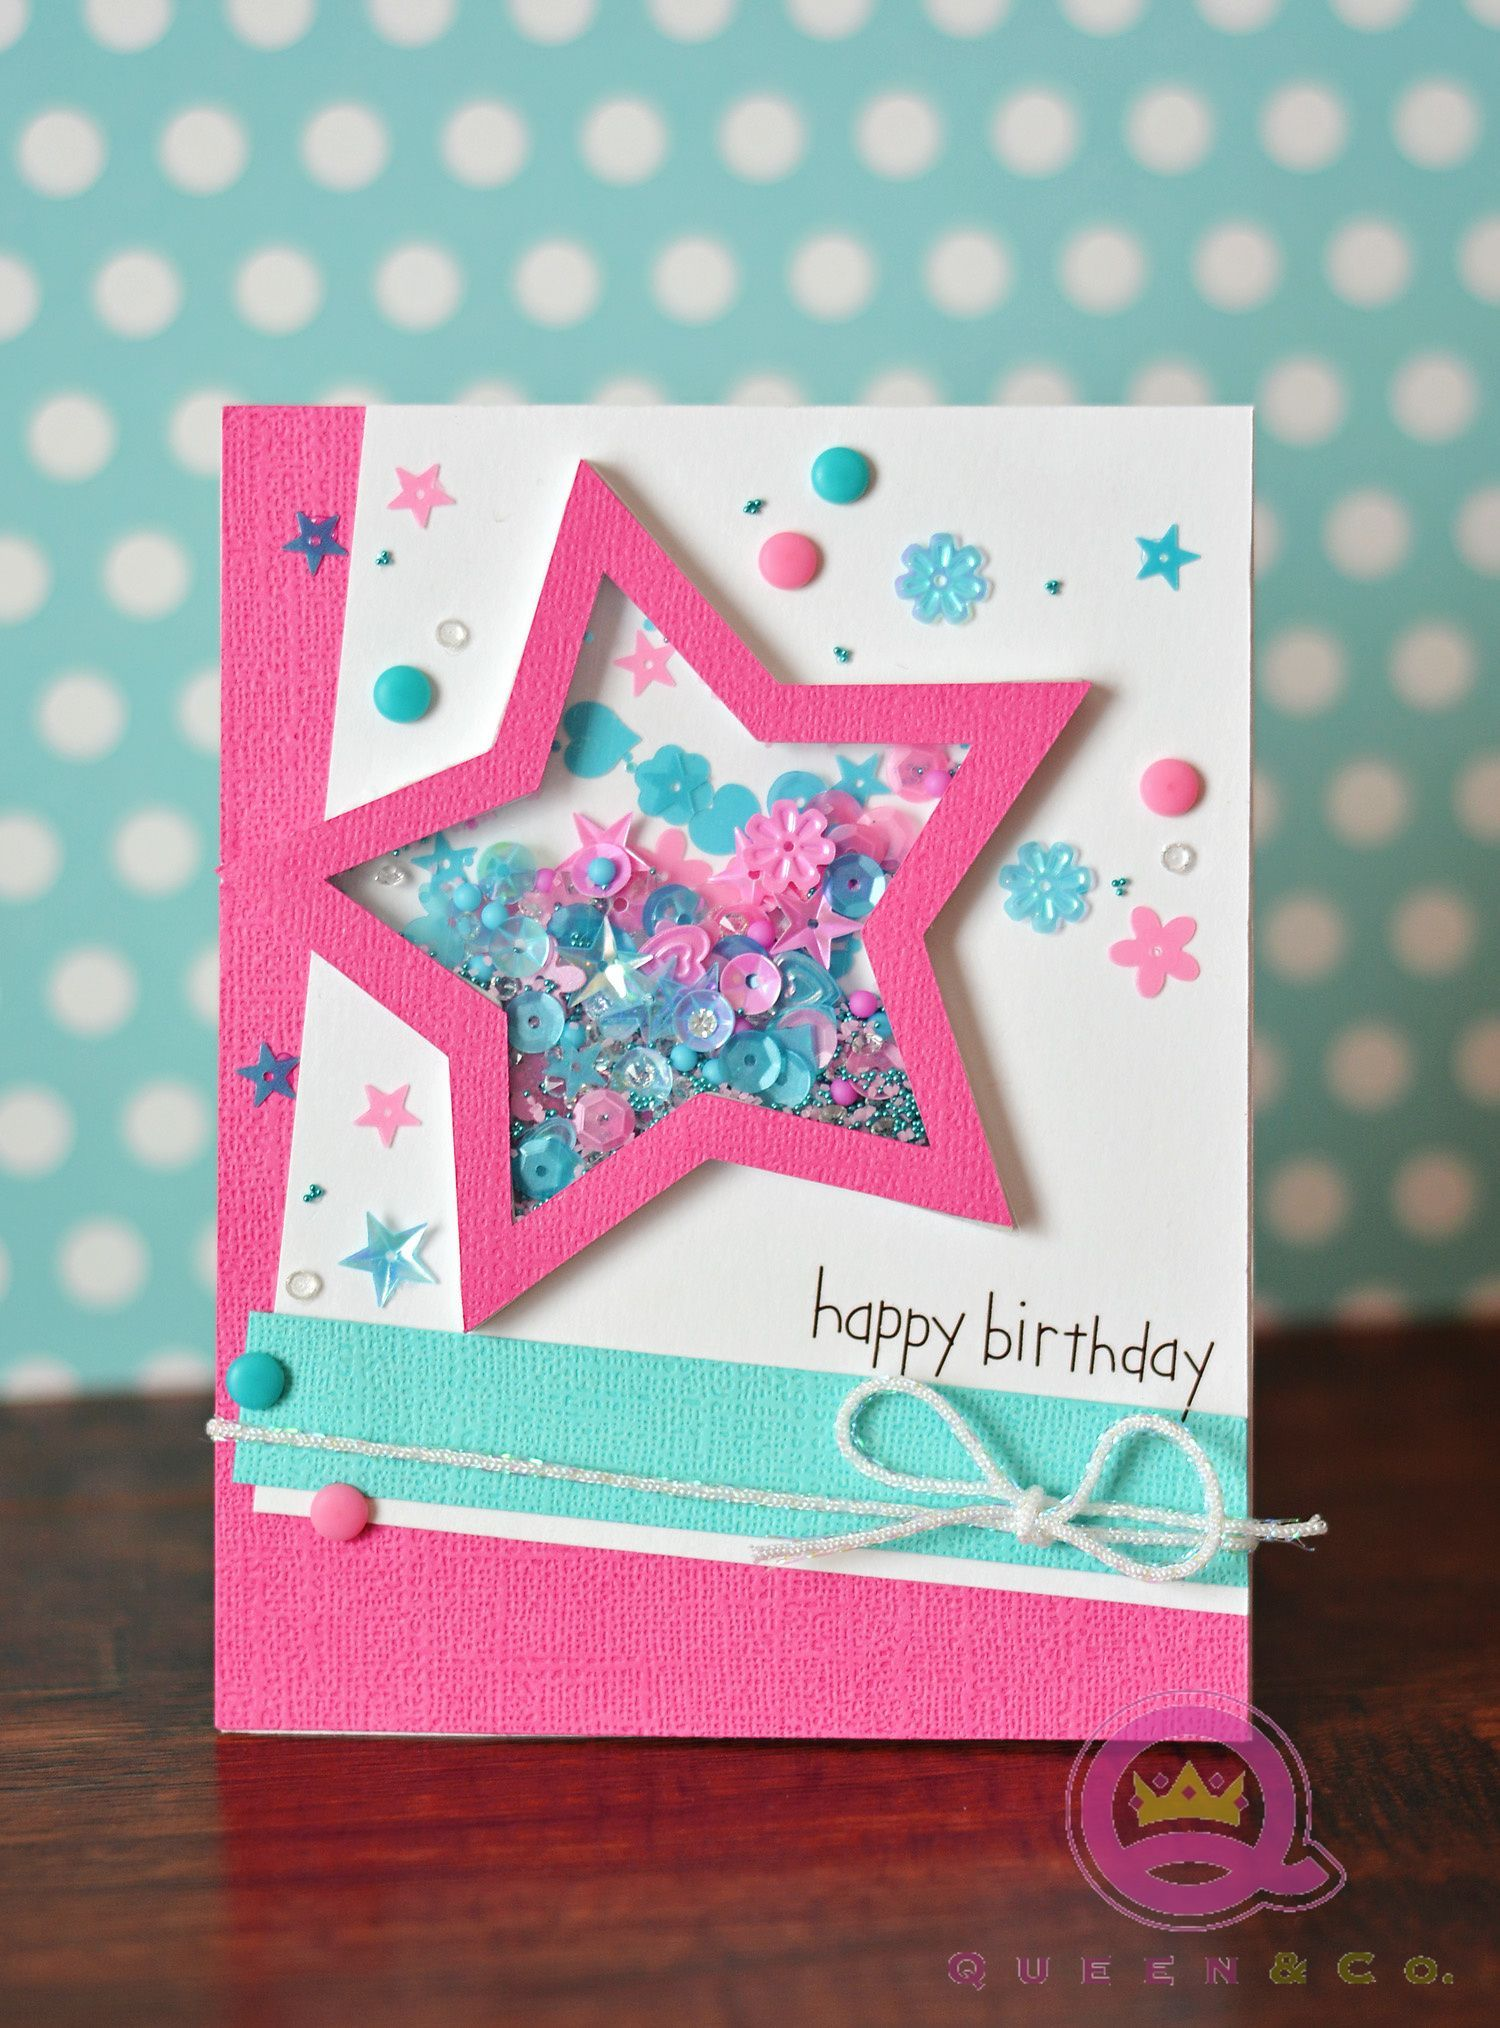 Happy Birthday Handmade Card Using Queen Co Pop Up Shaker Set Perfect For Creating Happy Birthday Cards Handmade Handmade Birthday Cards Girl Birthday Cards